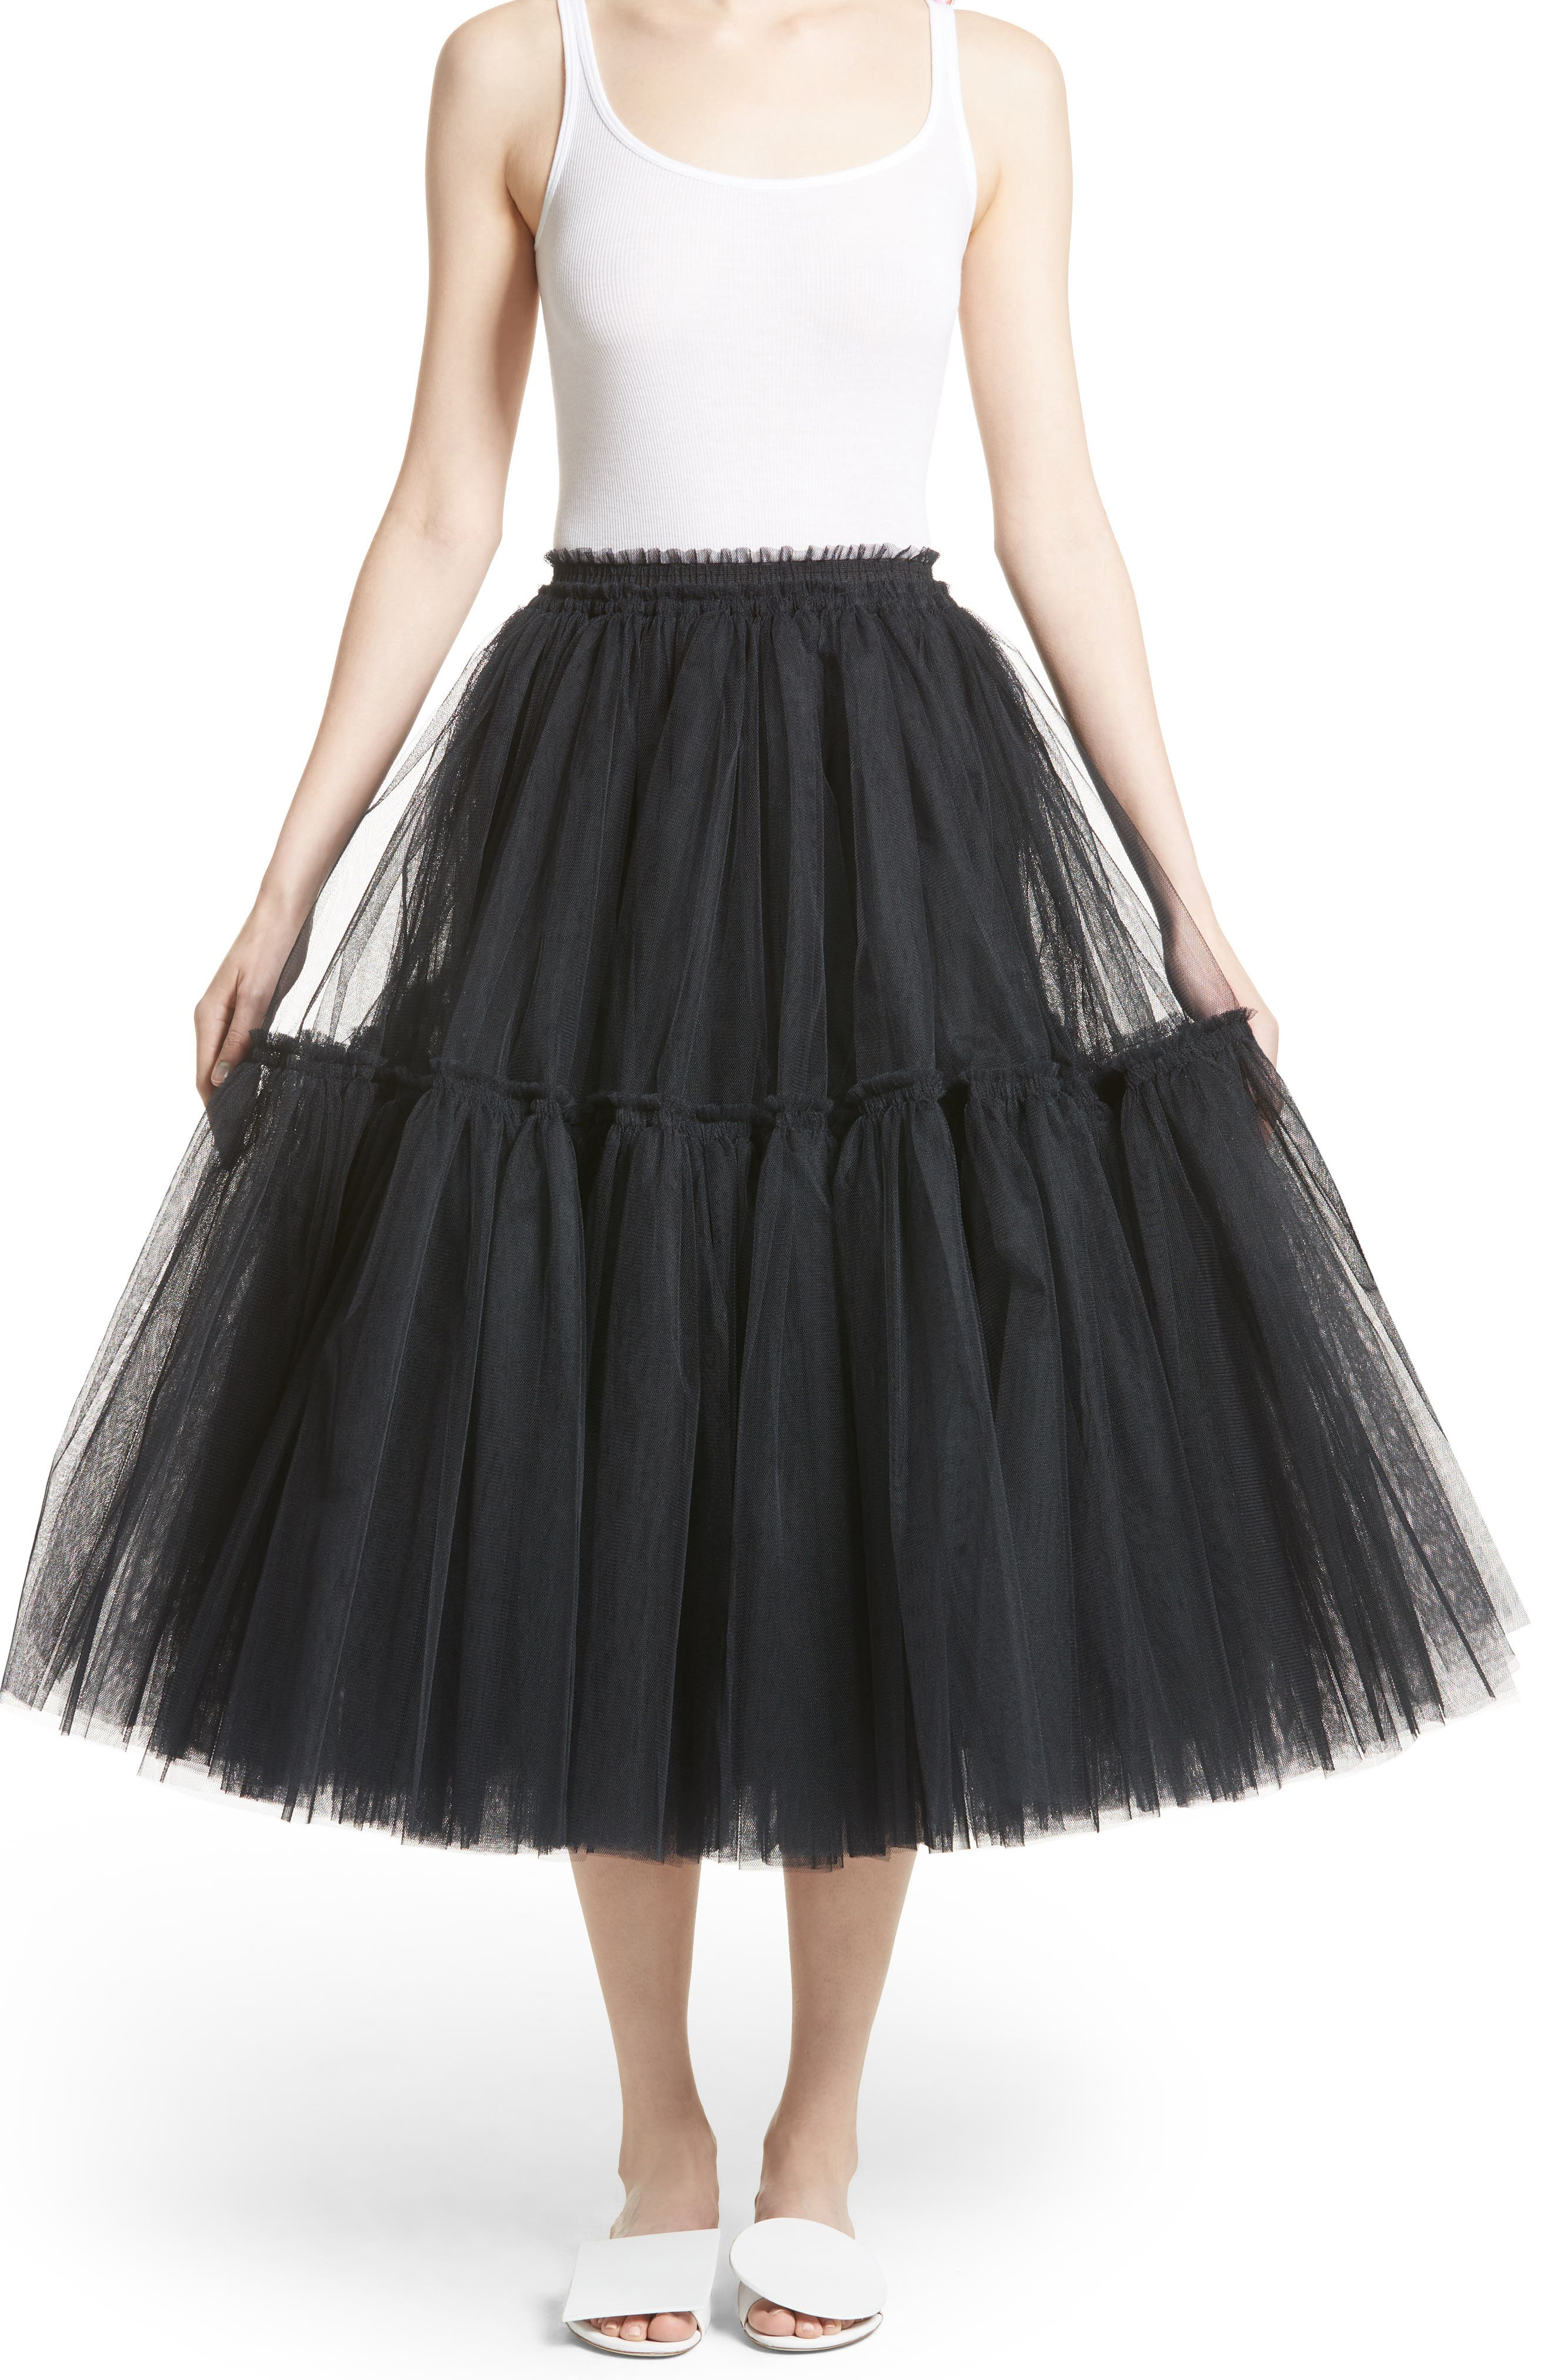 Gathered Tulle Skirt,                             Main thumbnail 1, color,                             001